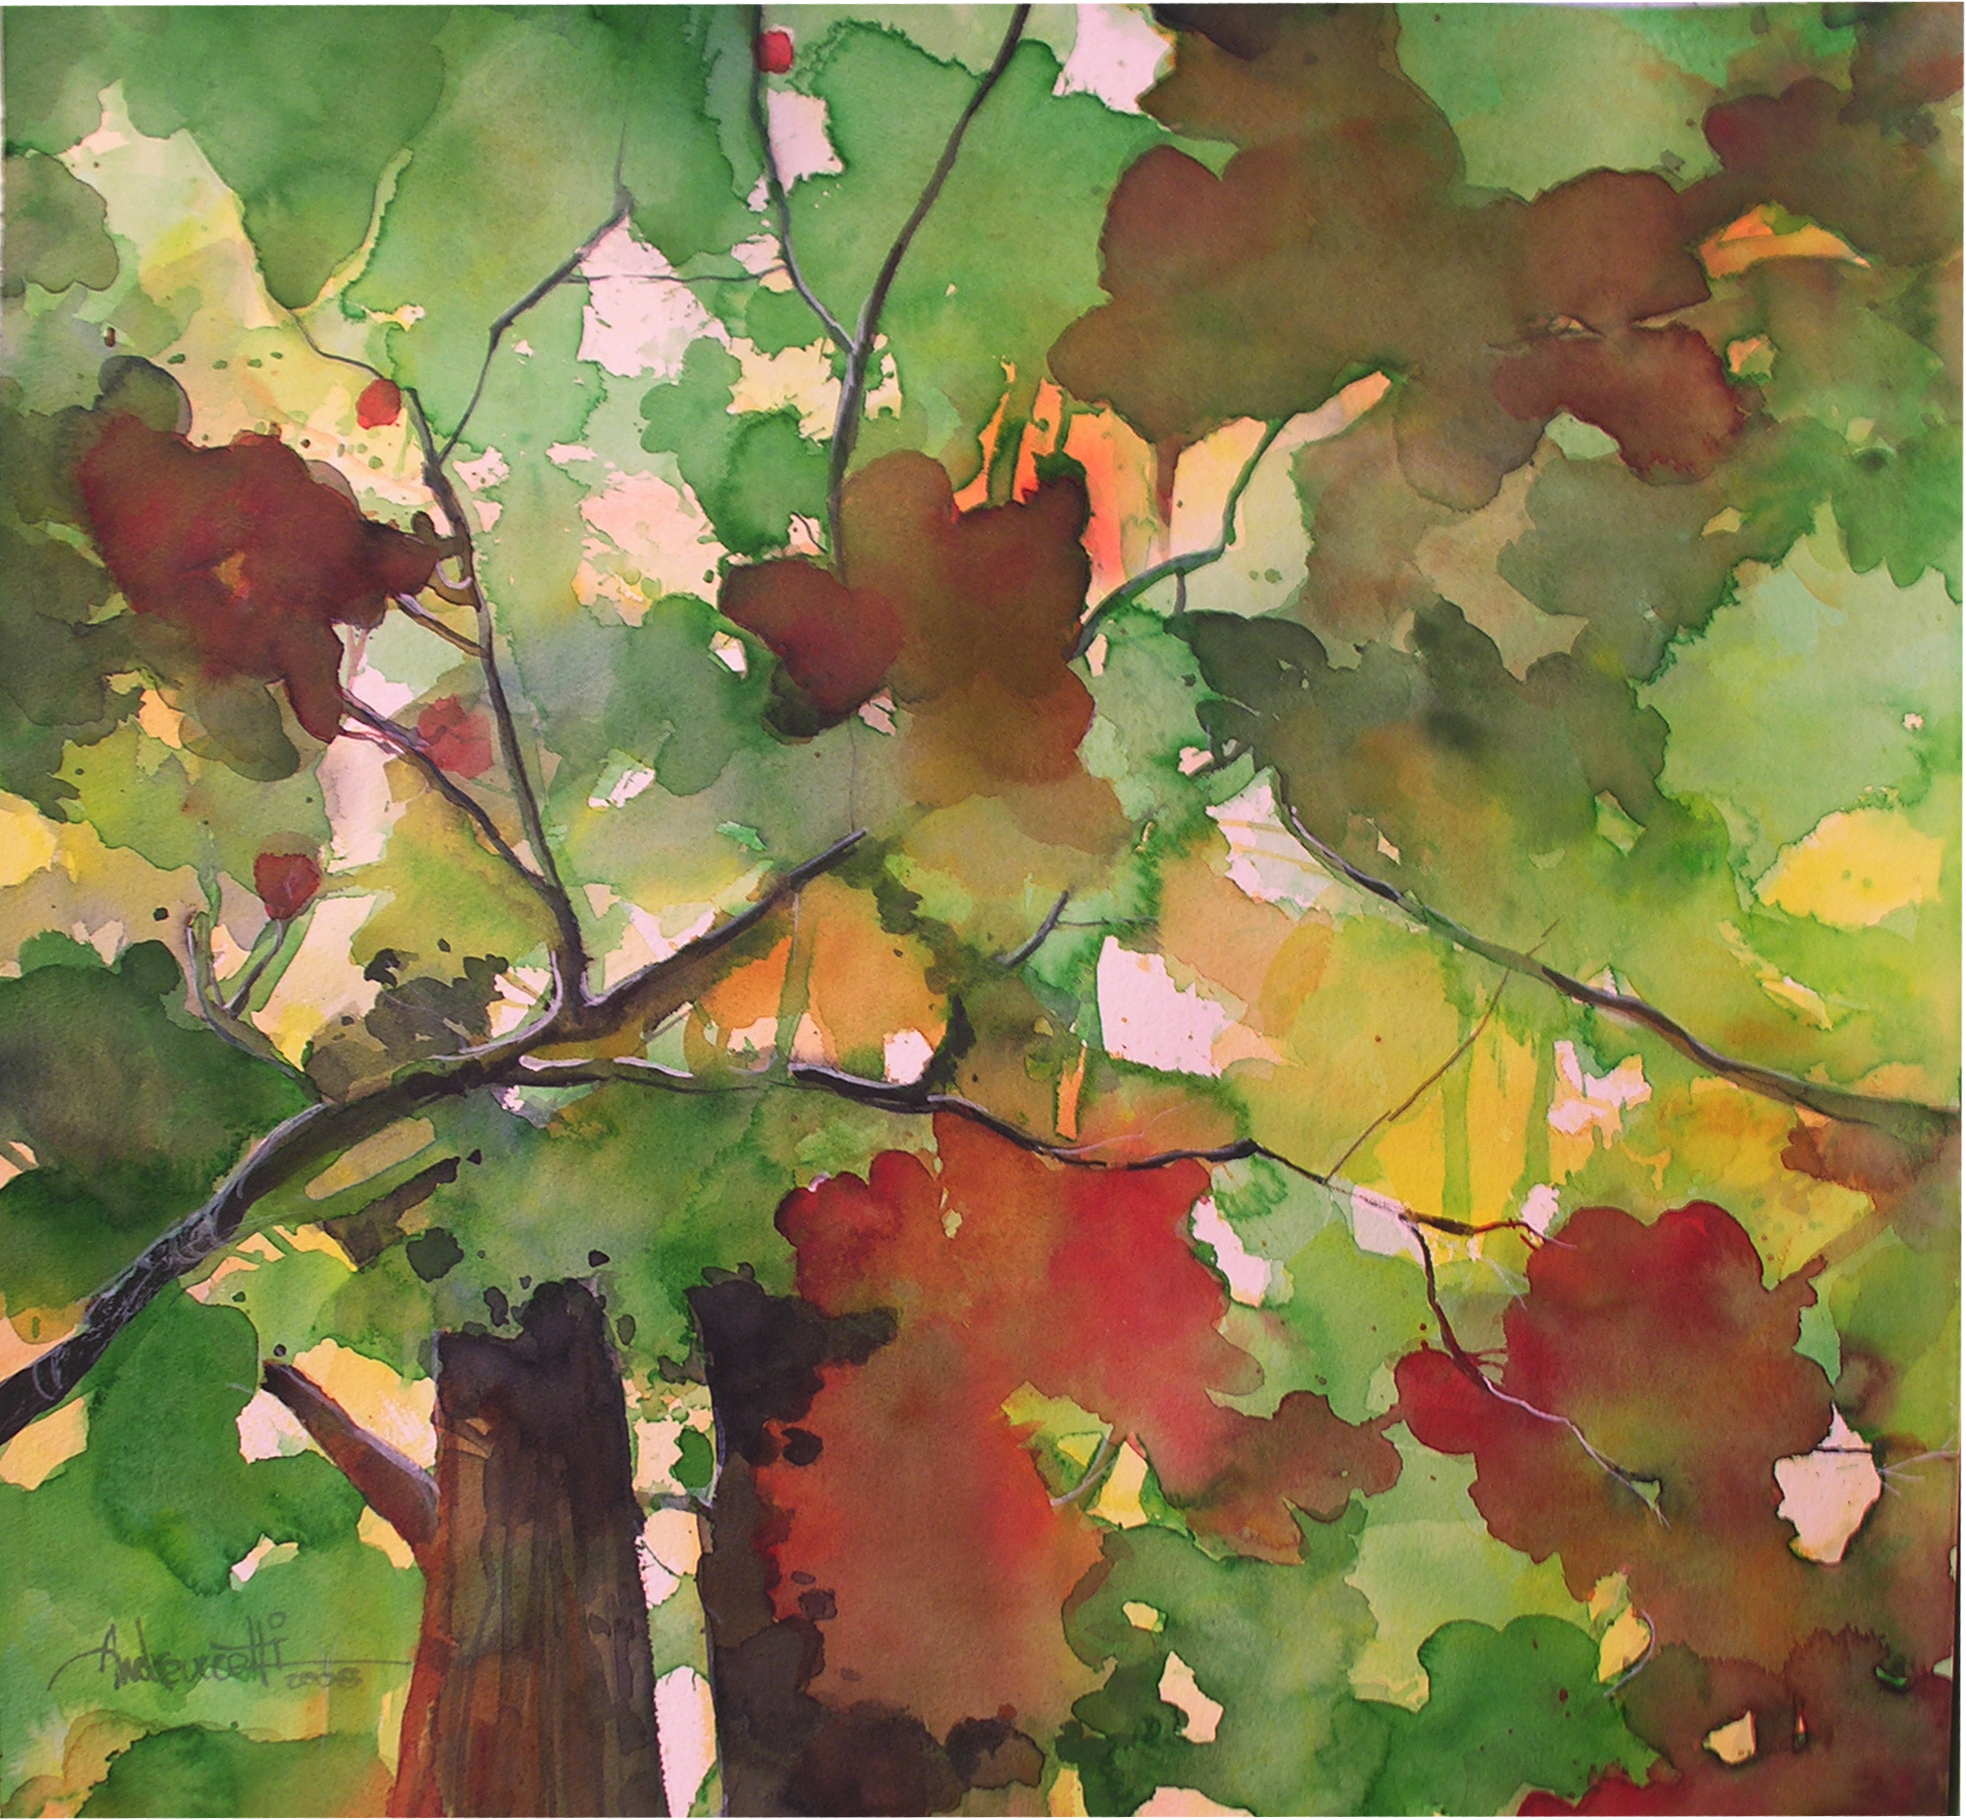 Autumn leaves n.4 - Alessandro Andreuccetti - Artwork ...